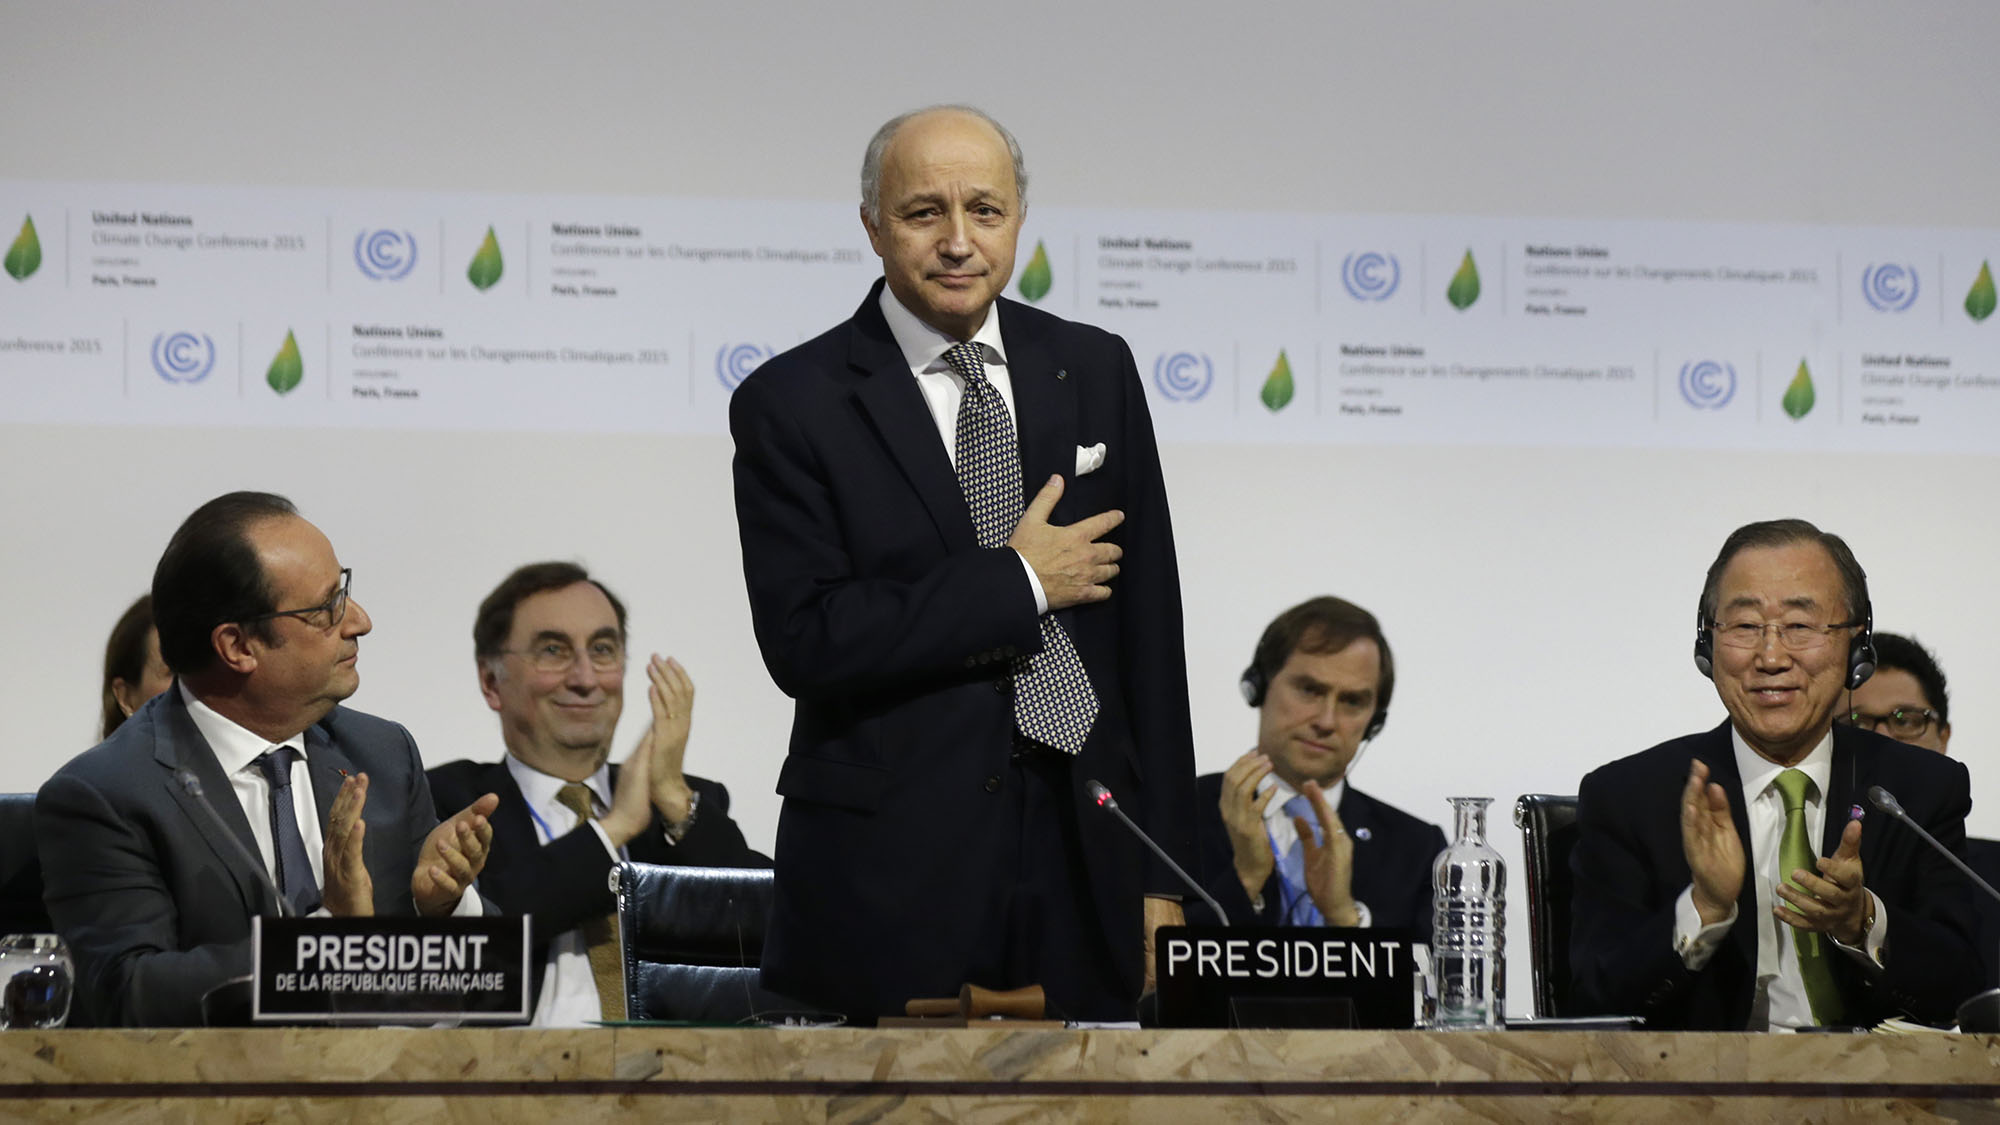 French Foreign Affairs Minister Laurent Fabius (C), President-designate of COP21, puts his hand over his heart after his speech as he stands near French President Francois Hollande (L) and United Nations Secretary-General Ban Ki-moon (R) at the World Climate Change Conference 2015 (COP21) at Le Bourget, near Paris, France, December 12, 2015.             TPX IMAGES OF THE DAY  - RTX1YCFS